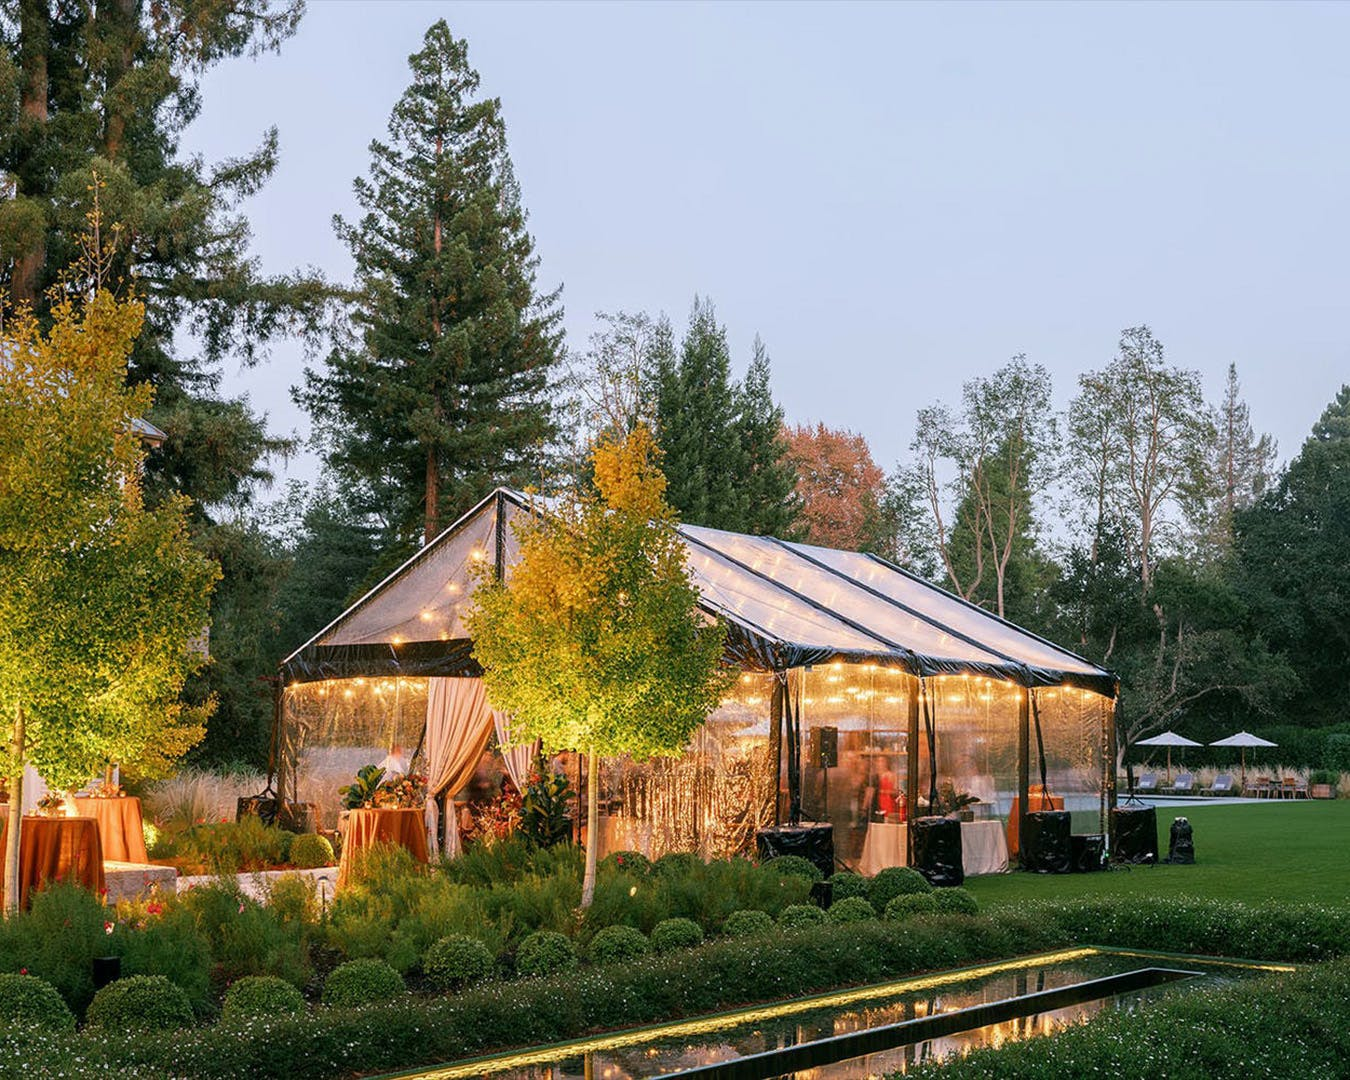 Transparent tent with autumnal lighting for engagement party | PartySlate